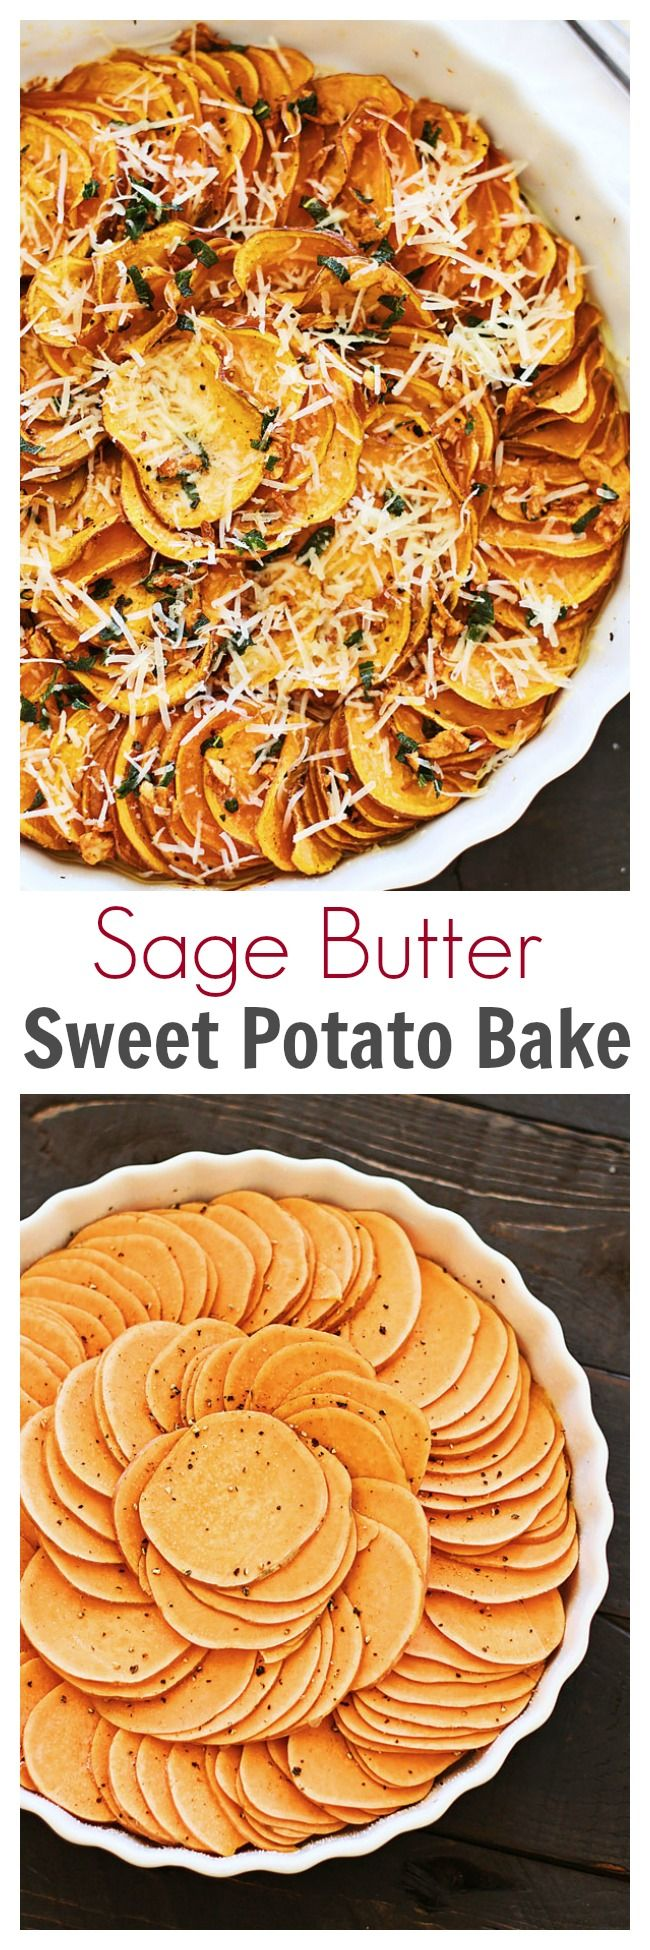 Sweet Potato Slices on Pinterest | Sweet Potato Slices, Baked Sweet ...